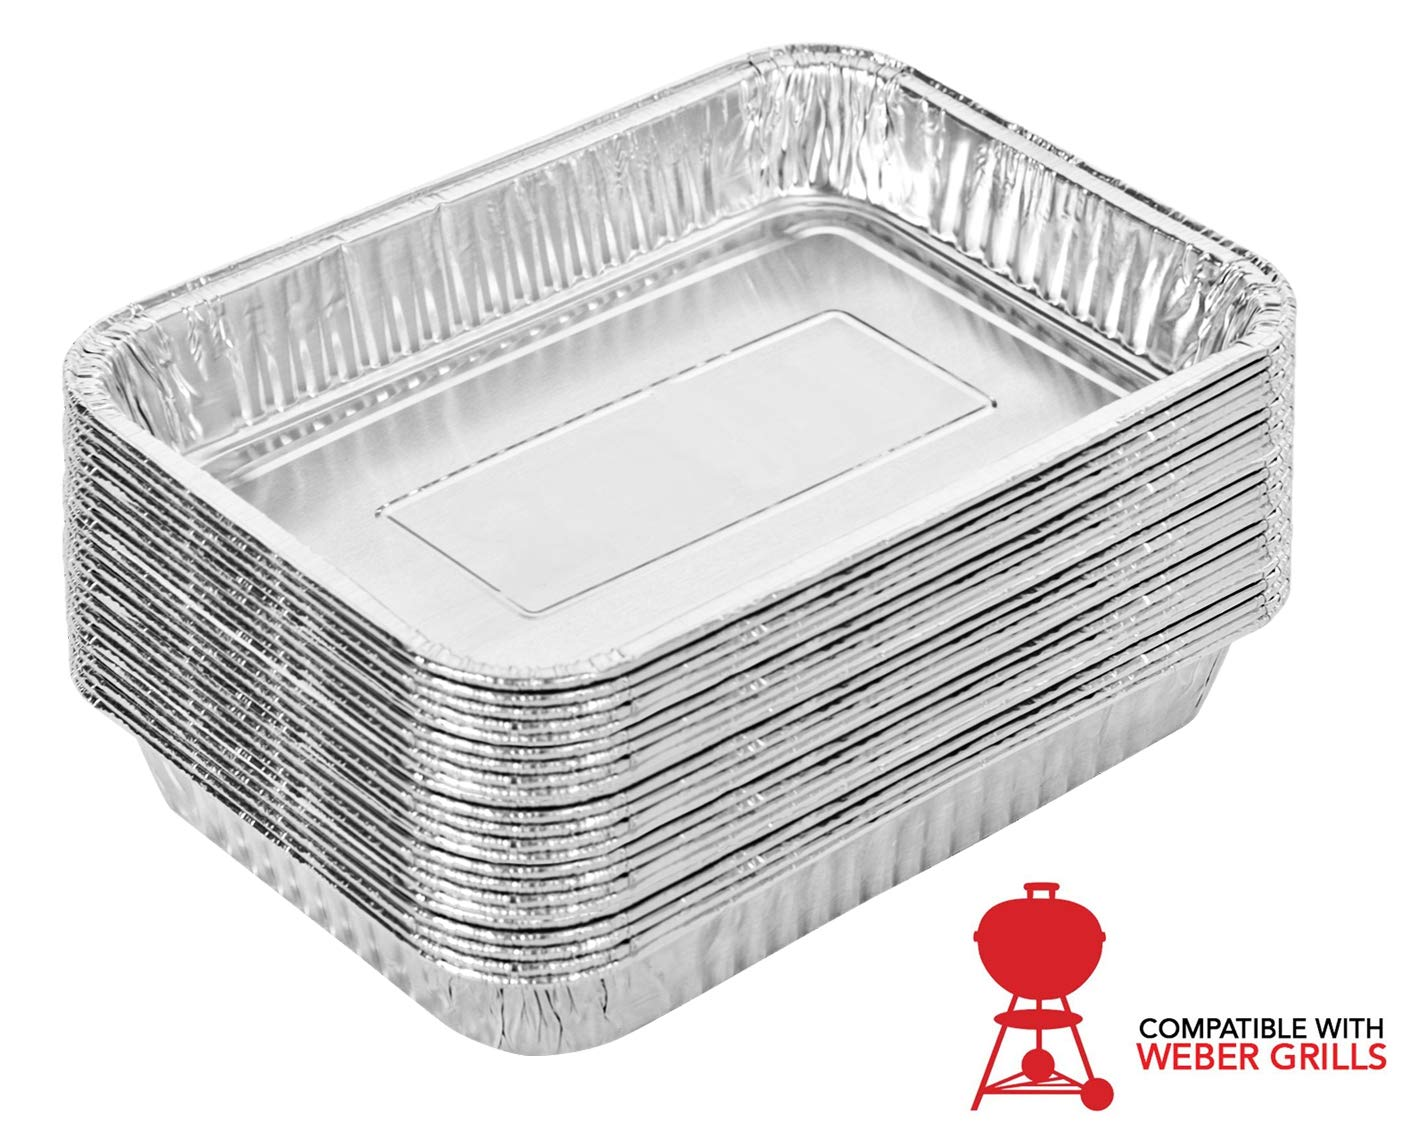 Stock Your Home Aluminum Drip Pan (25 Count) - Weber Aluminum Drip Pans - Weber Grill Pan - Weber Drip Pan Liners - BBQ Grease Pans - Disposable Drip Pan - Disposable Oil Drip Pan - Grill Grease Tray